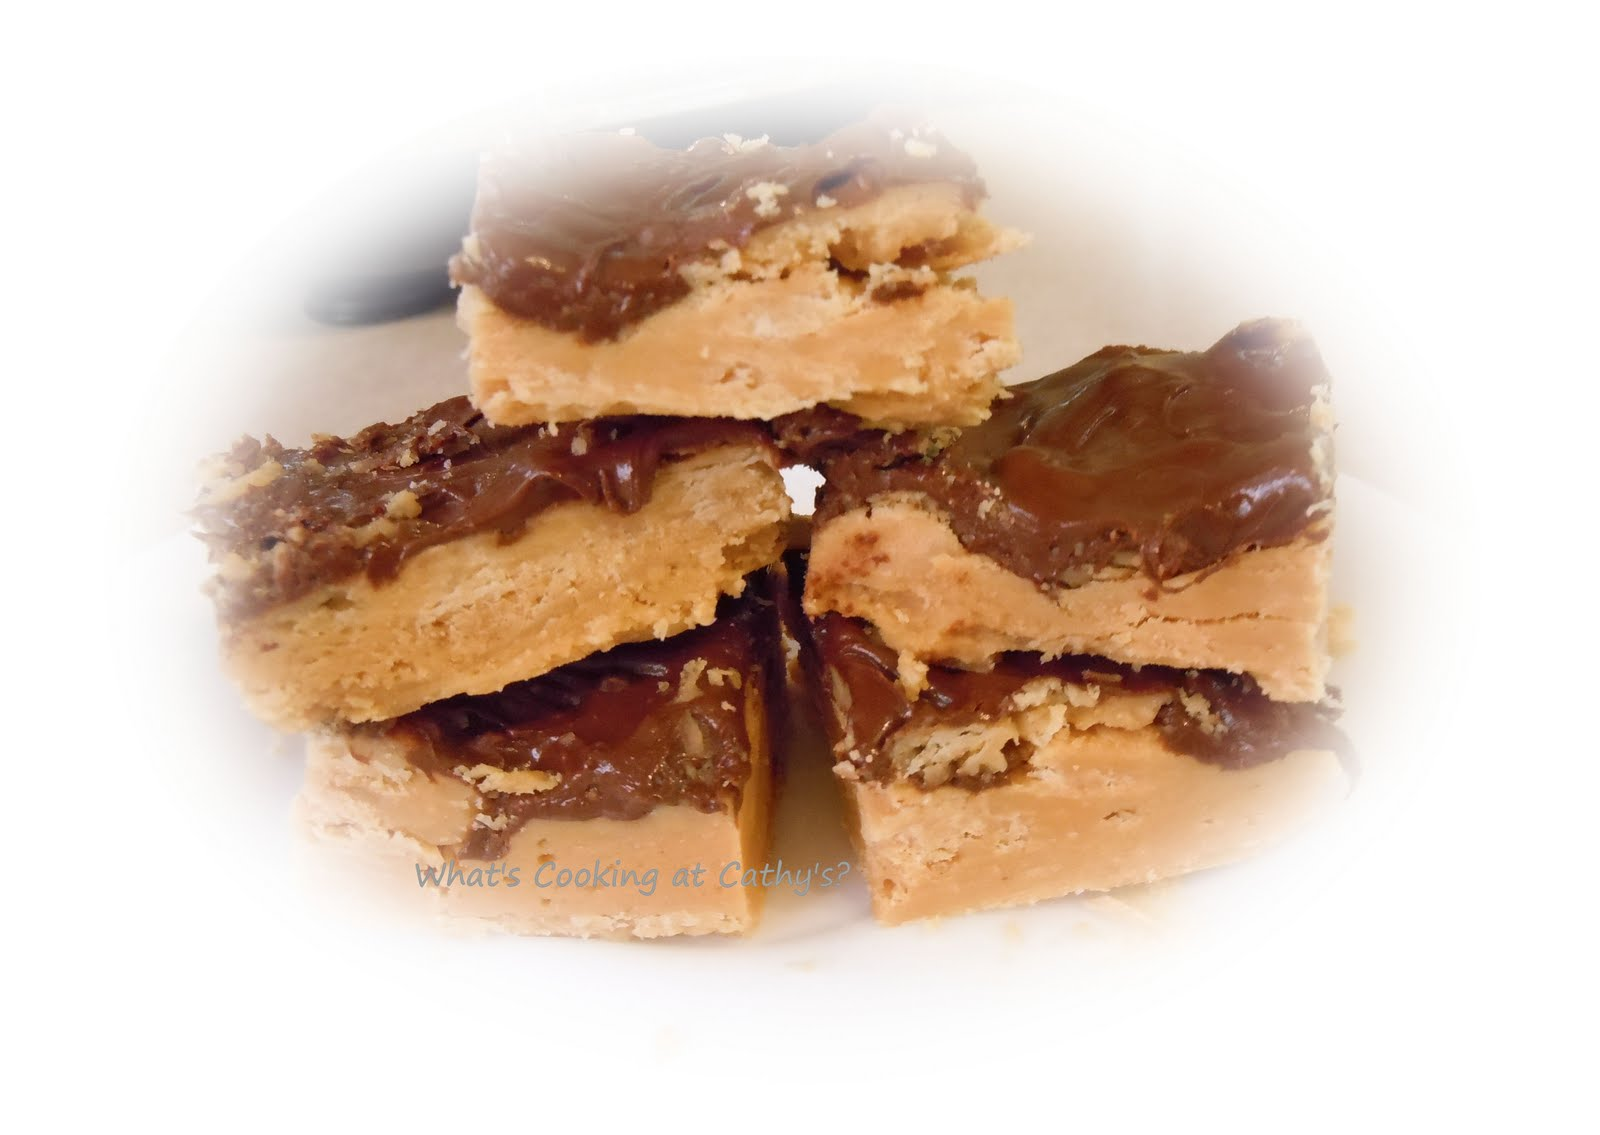 What's Cooking At Cathy's?: Homemade Butterfinger Candy